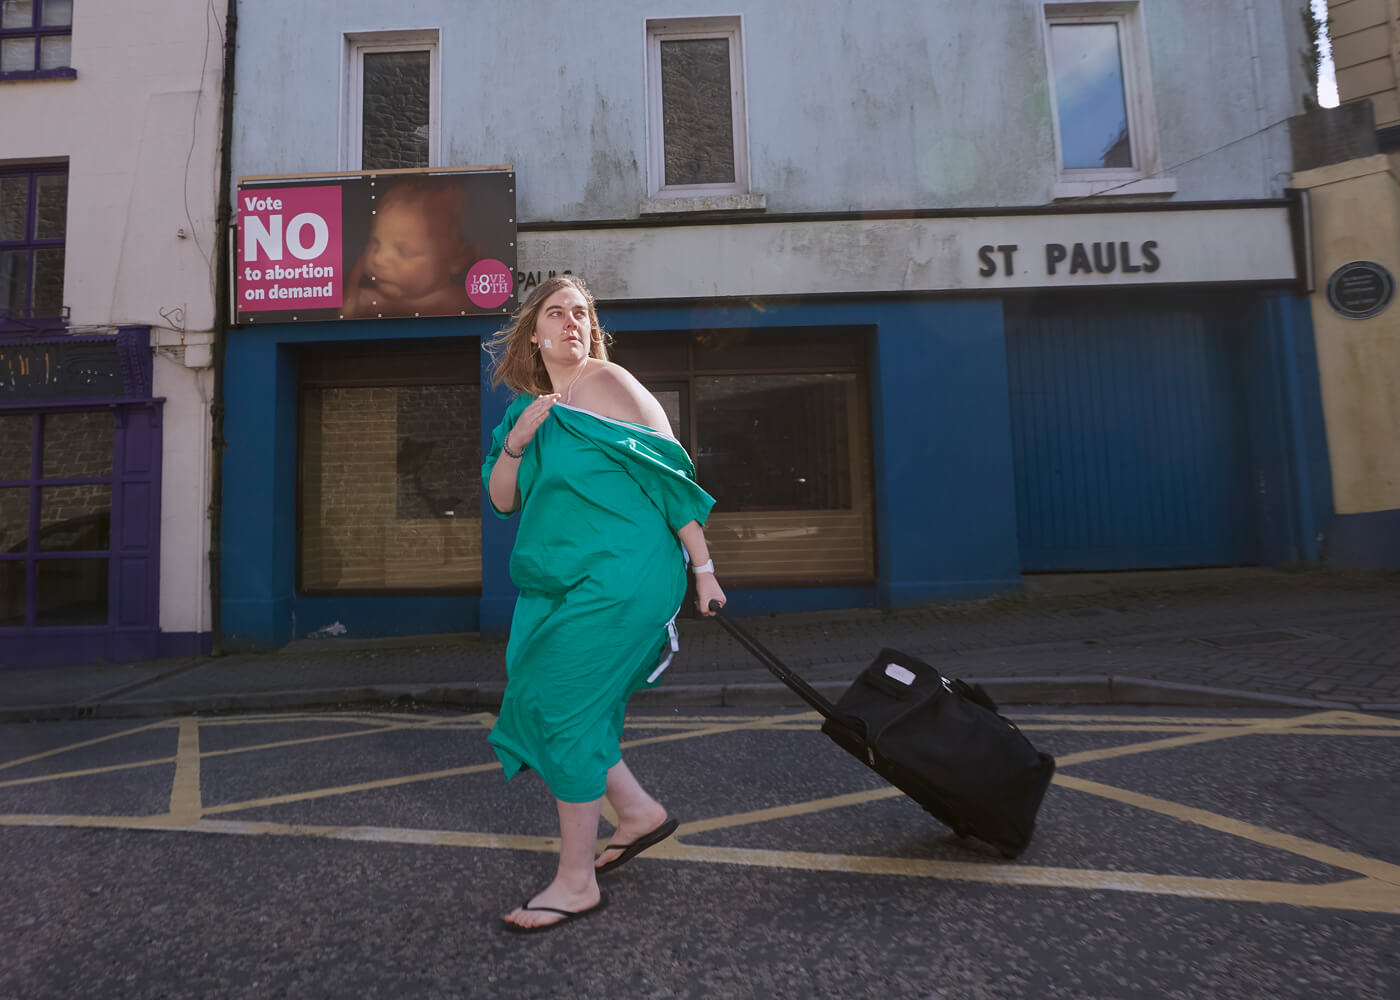 Grace, west of Ireland.  Grace performed the story of her journey to England for an abortion in towns and villages throughout Ireland.